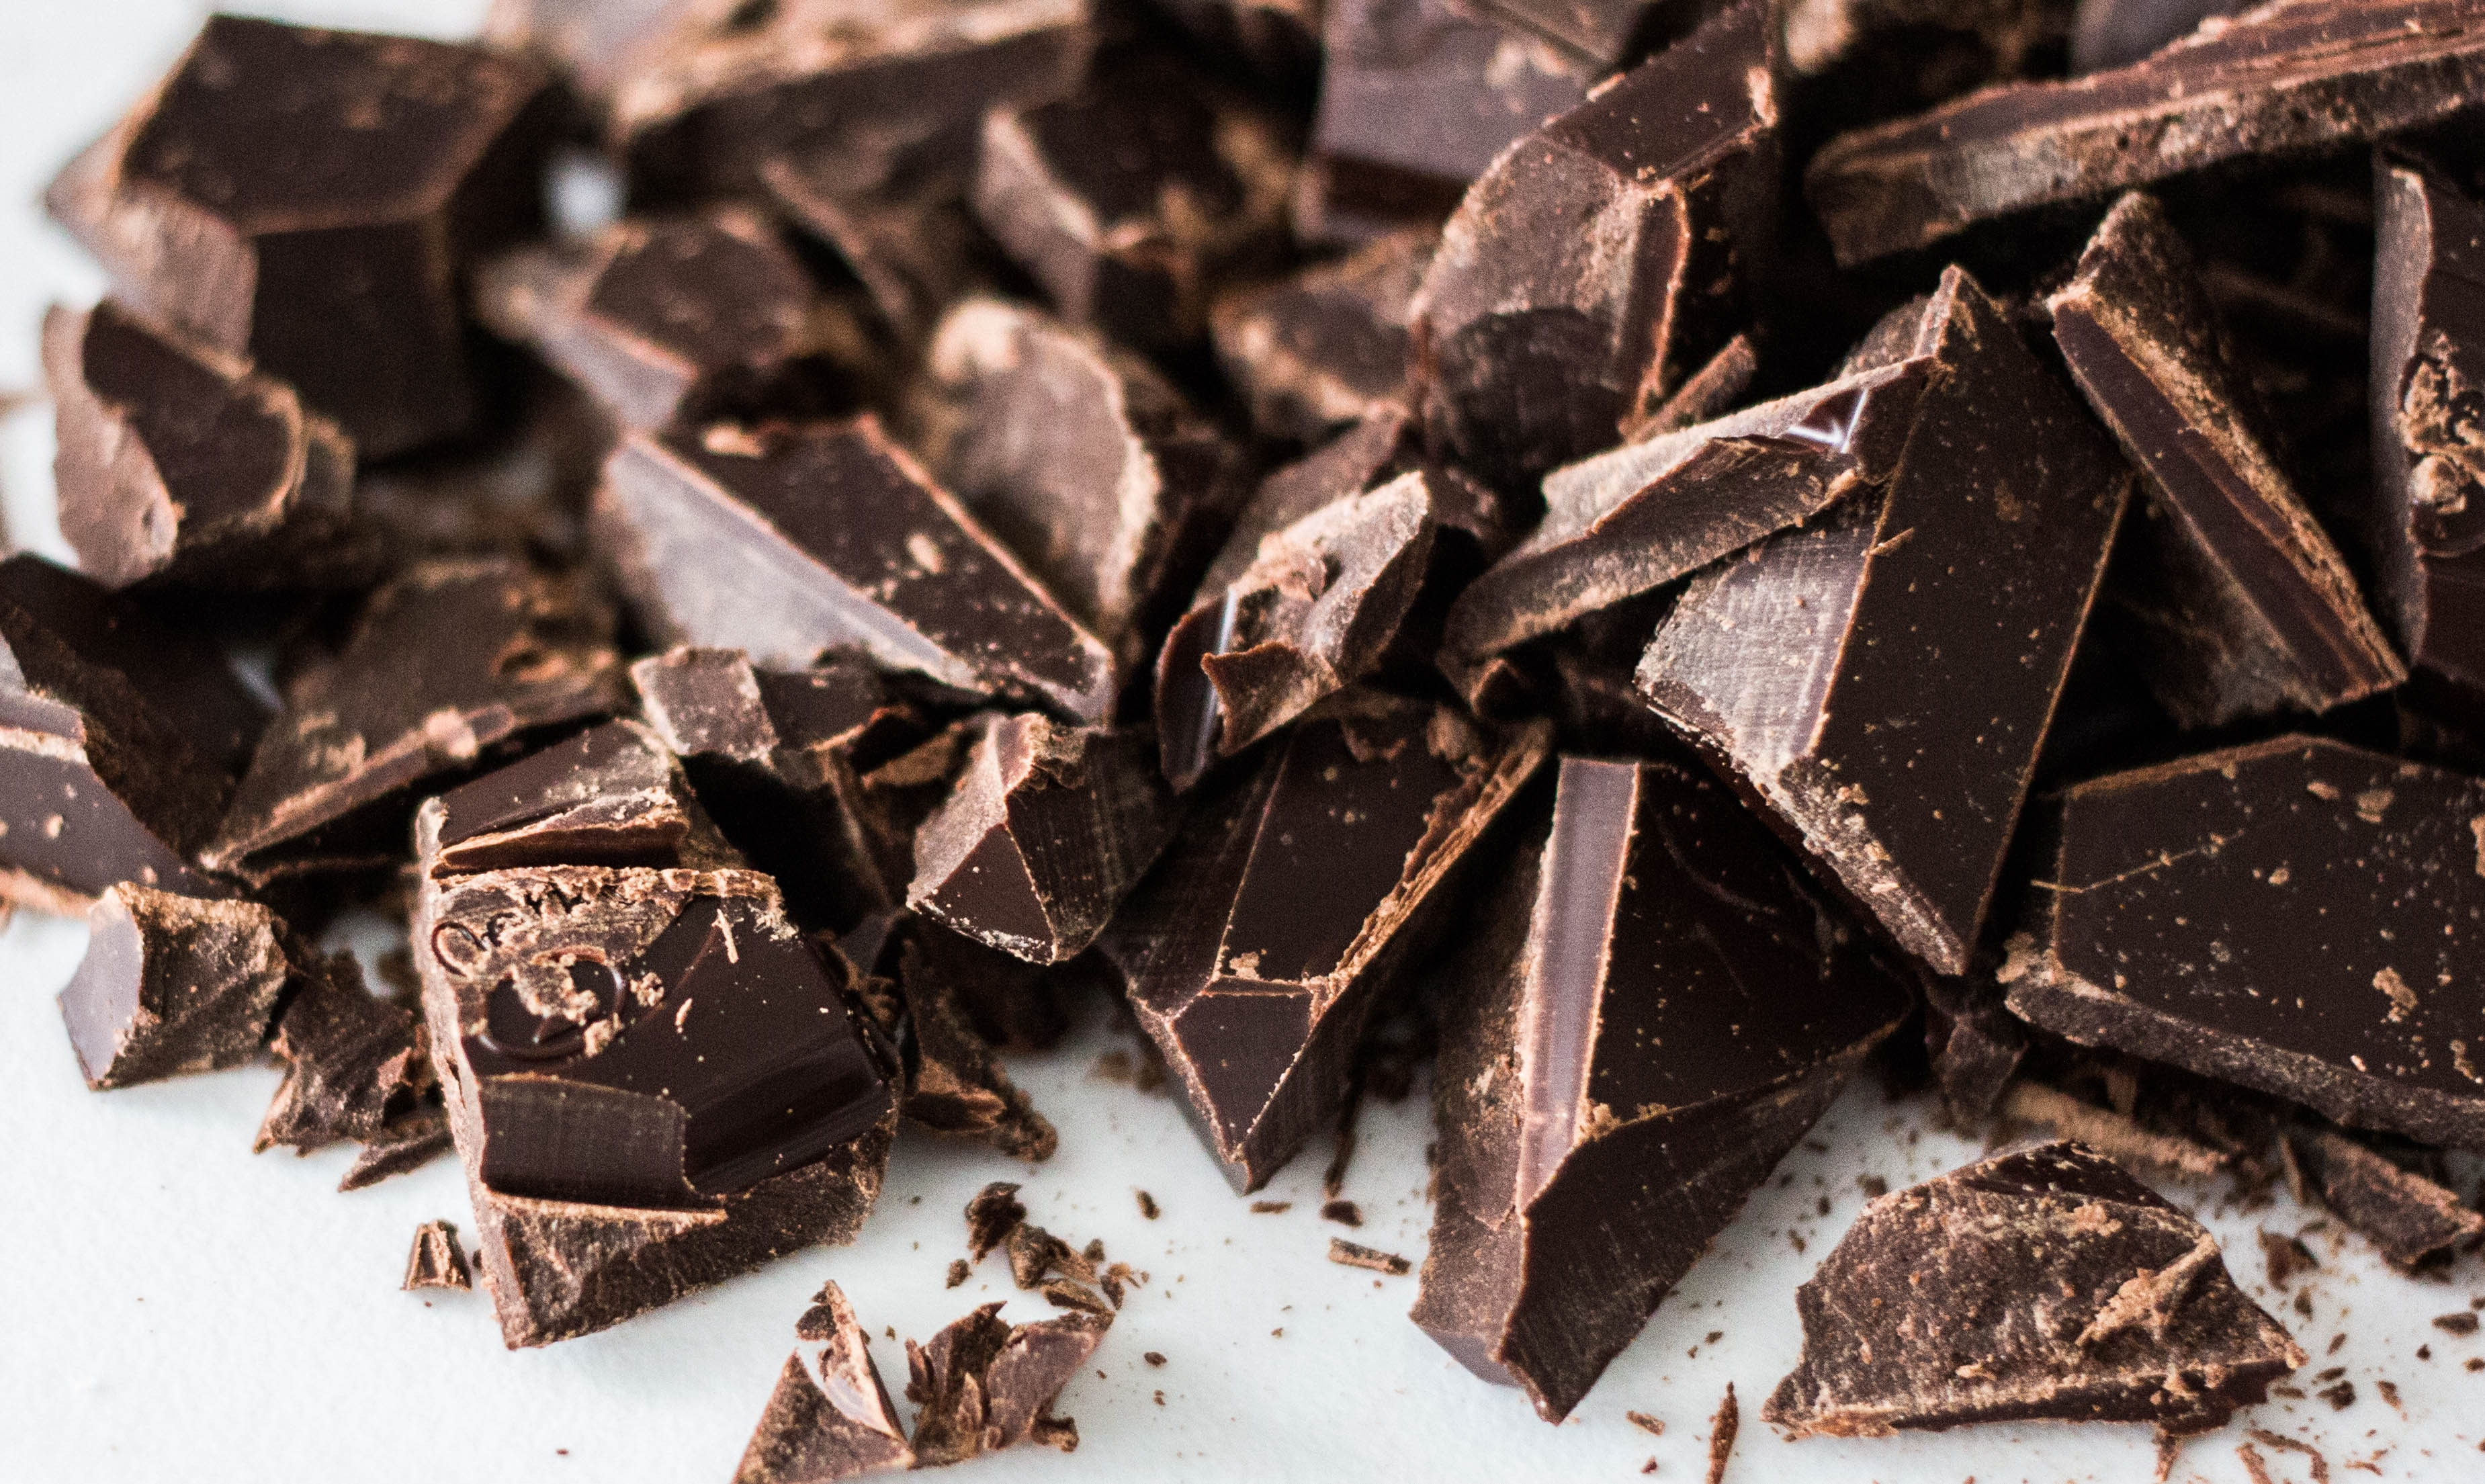 keto low carb chocolate recipe